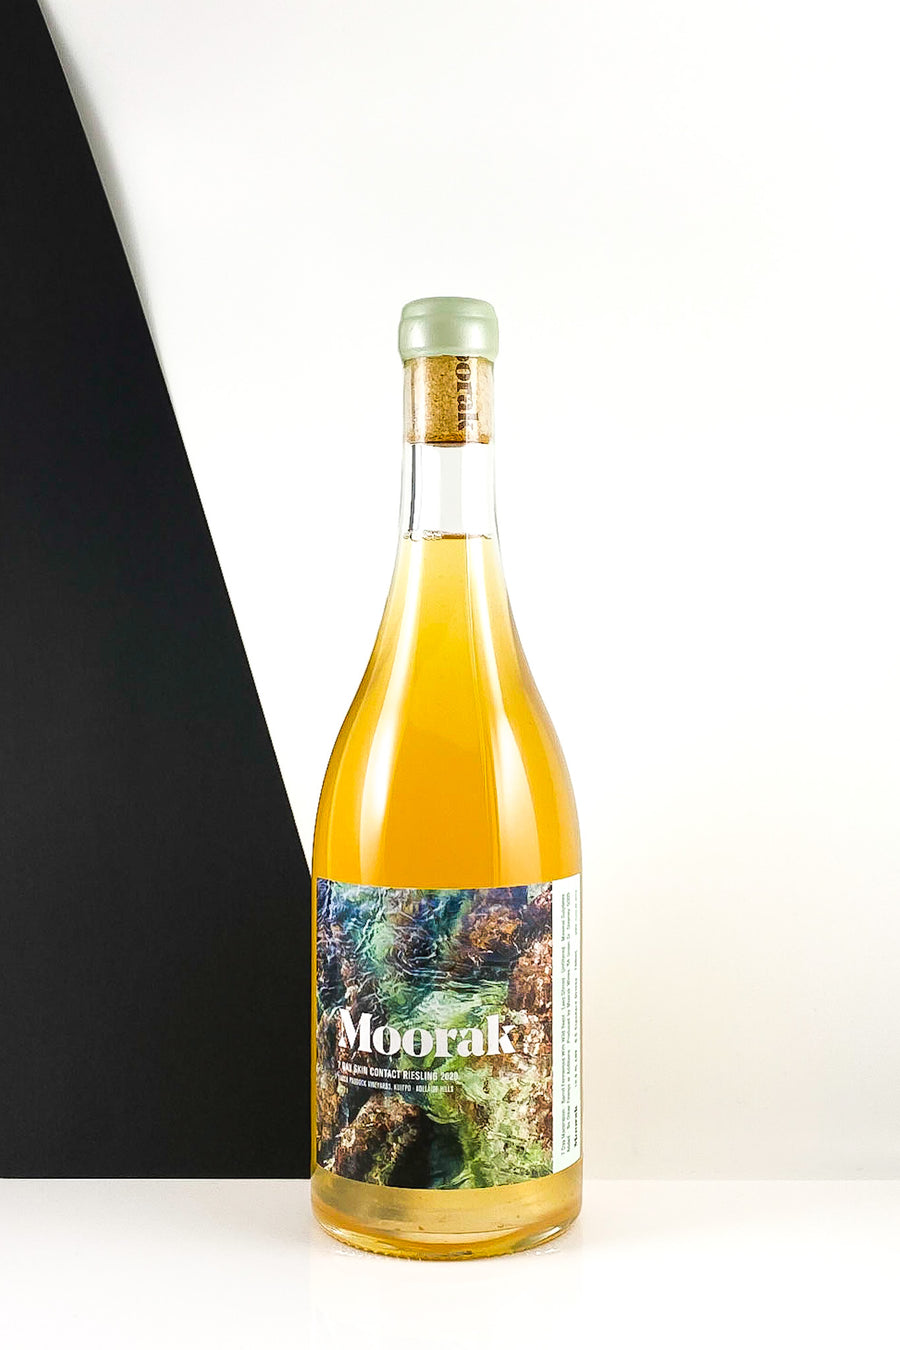 Moorak 7 Day Skin Contact Riesling 2020